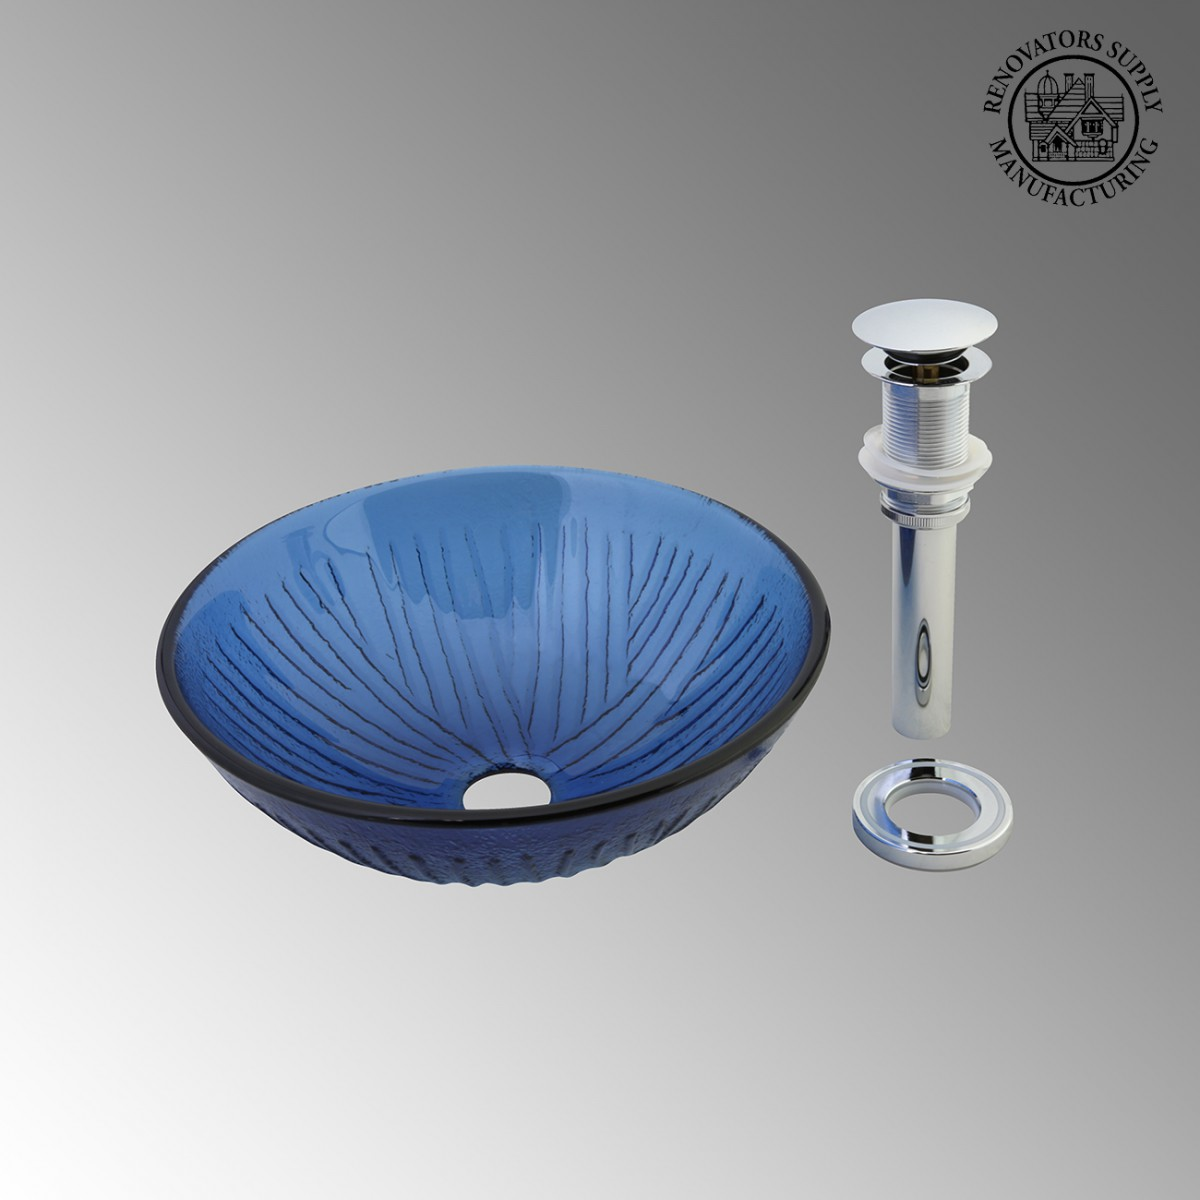 Bathroom Frosted Blue Tempered Glass Vessel Sink Round Bowl With Drain